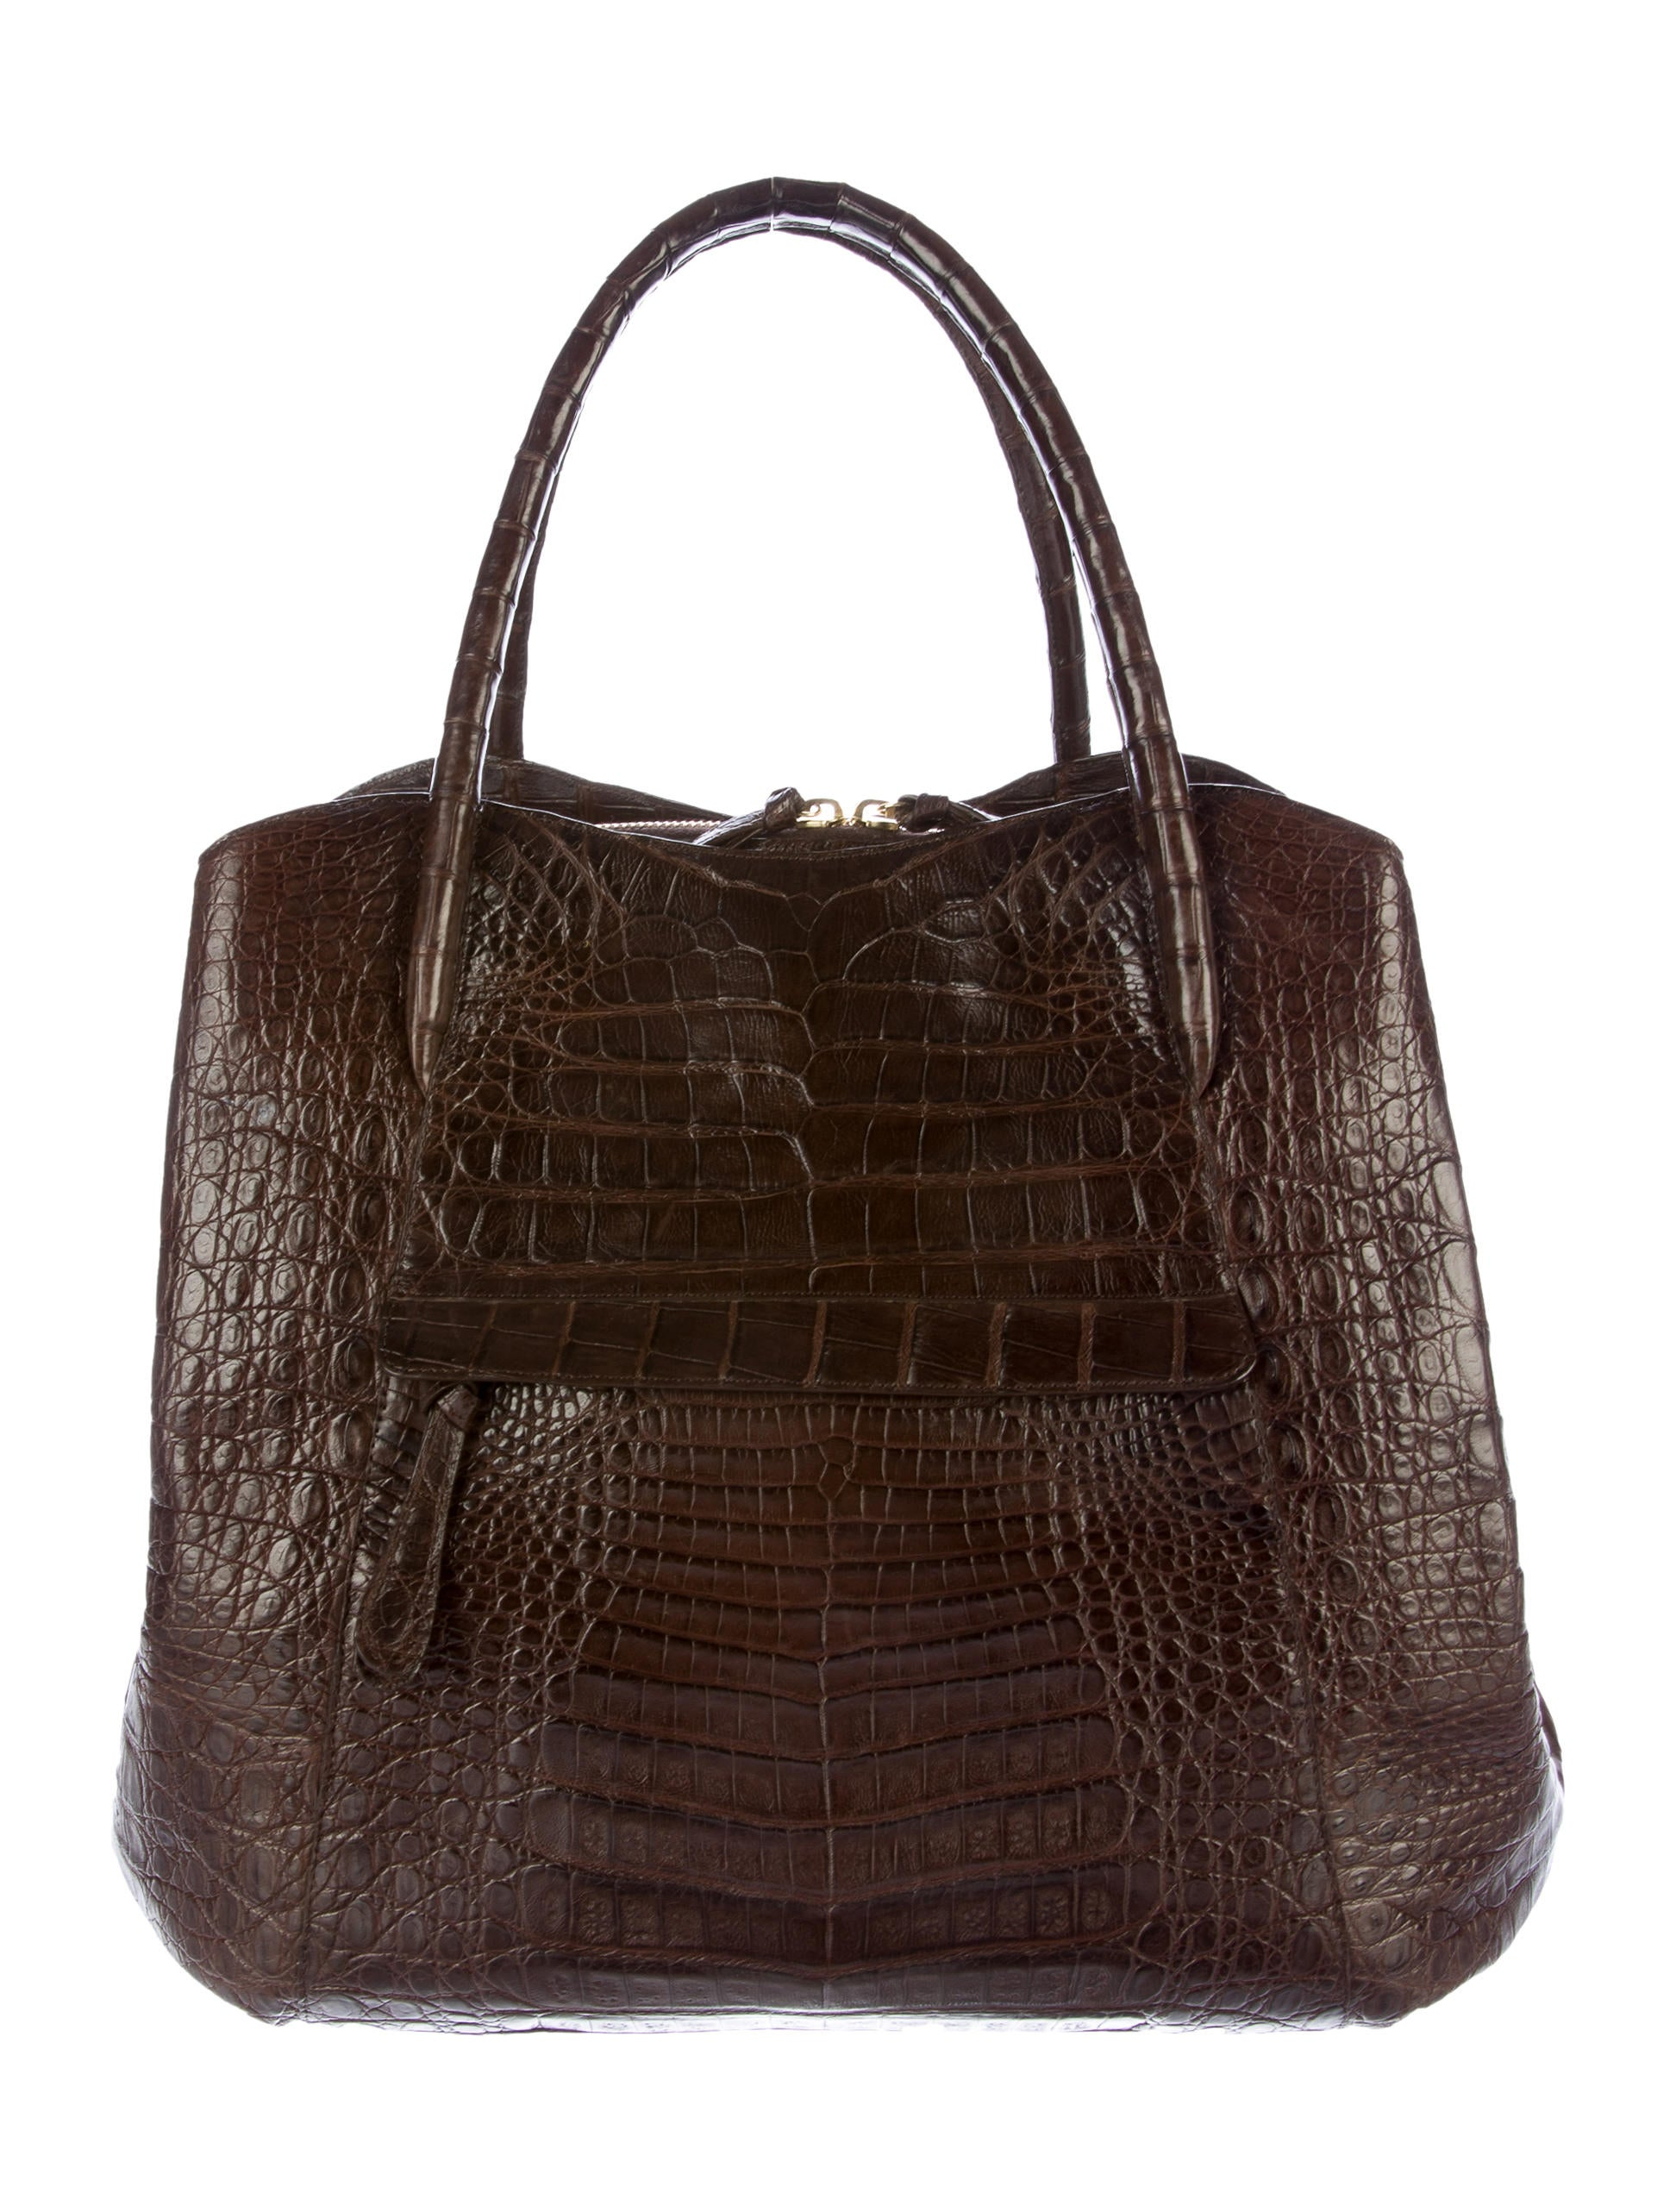 Nancy gonzalez crocodile zip tote handbags nan23313 for Nancy gonzalez crocodile tote